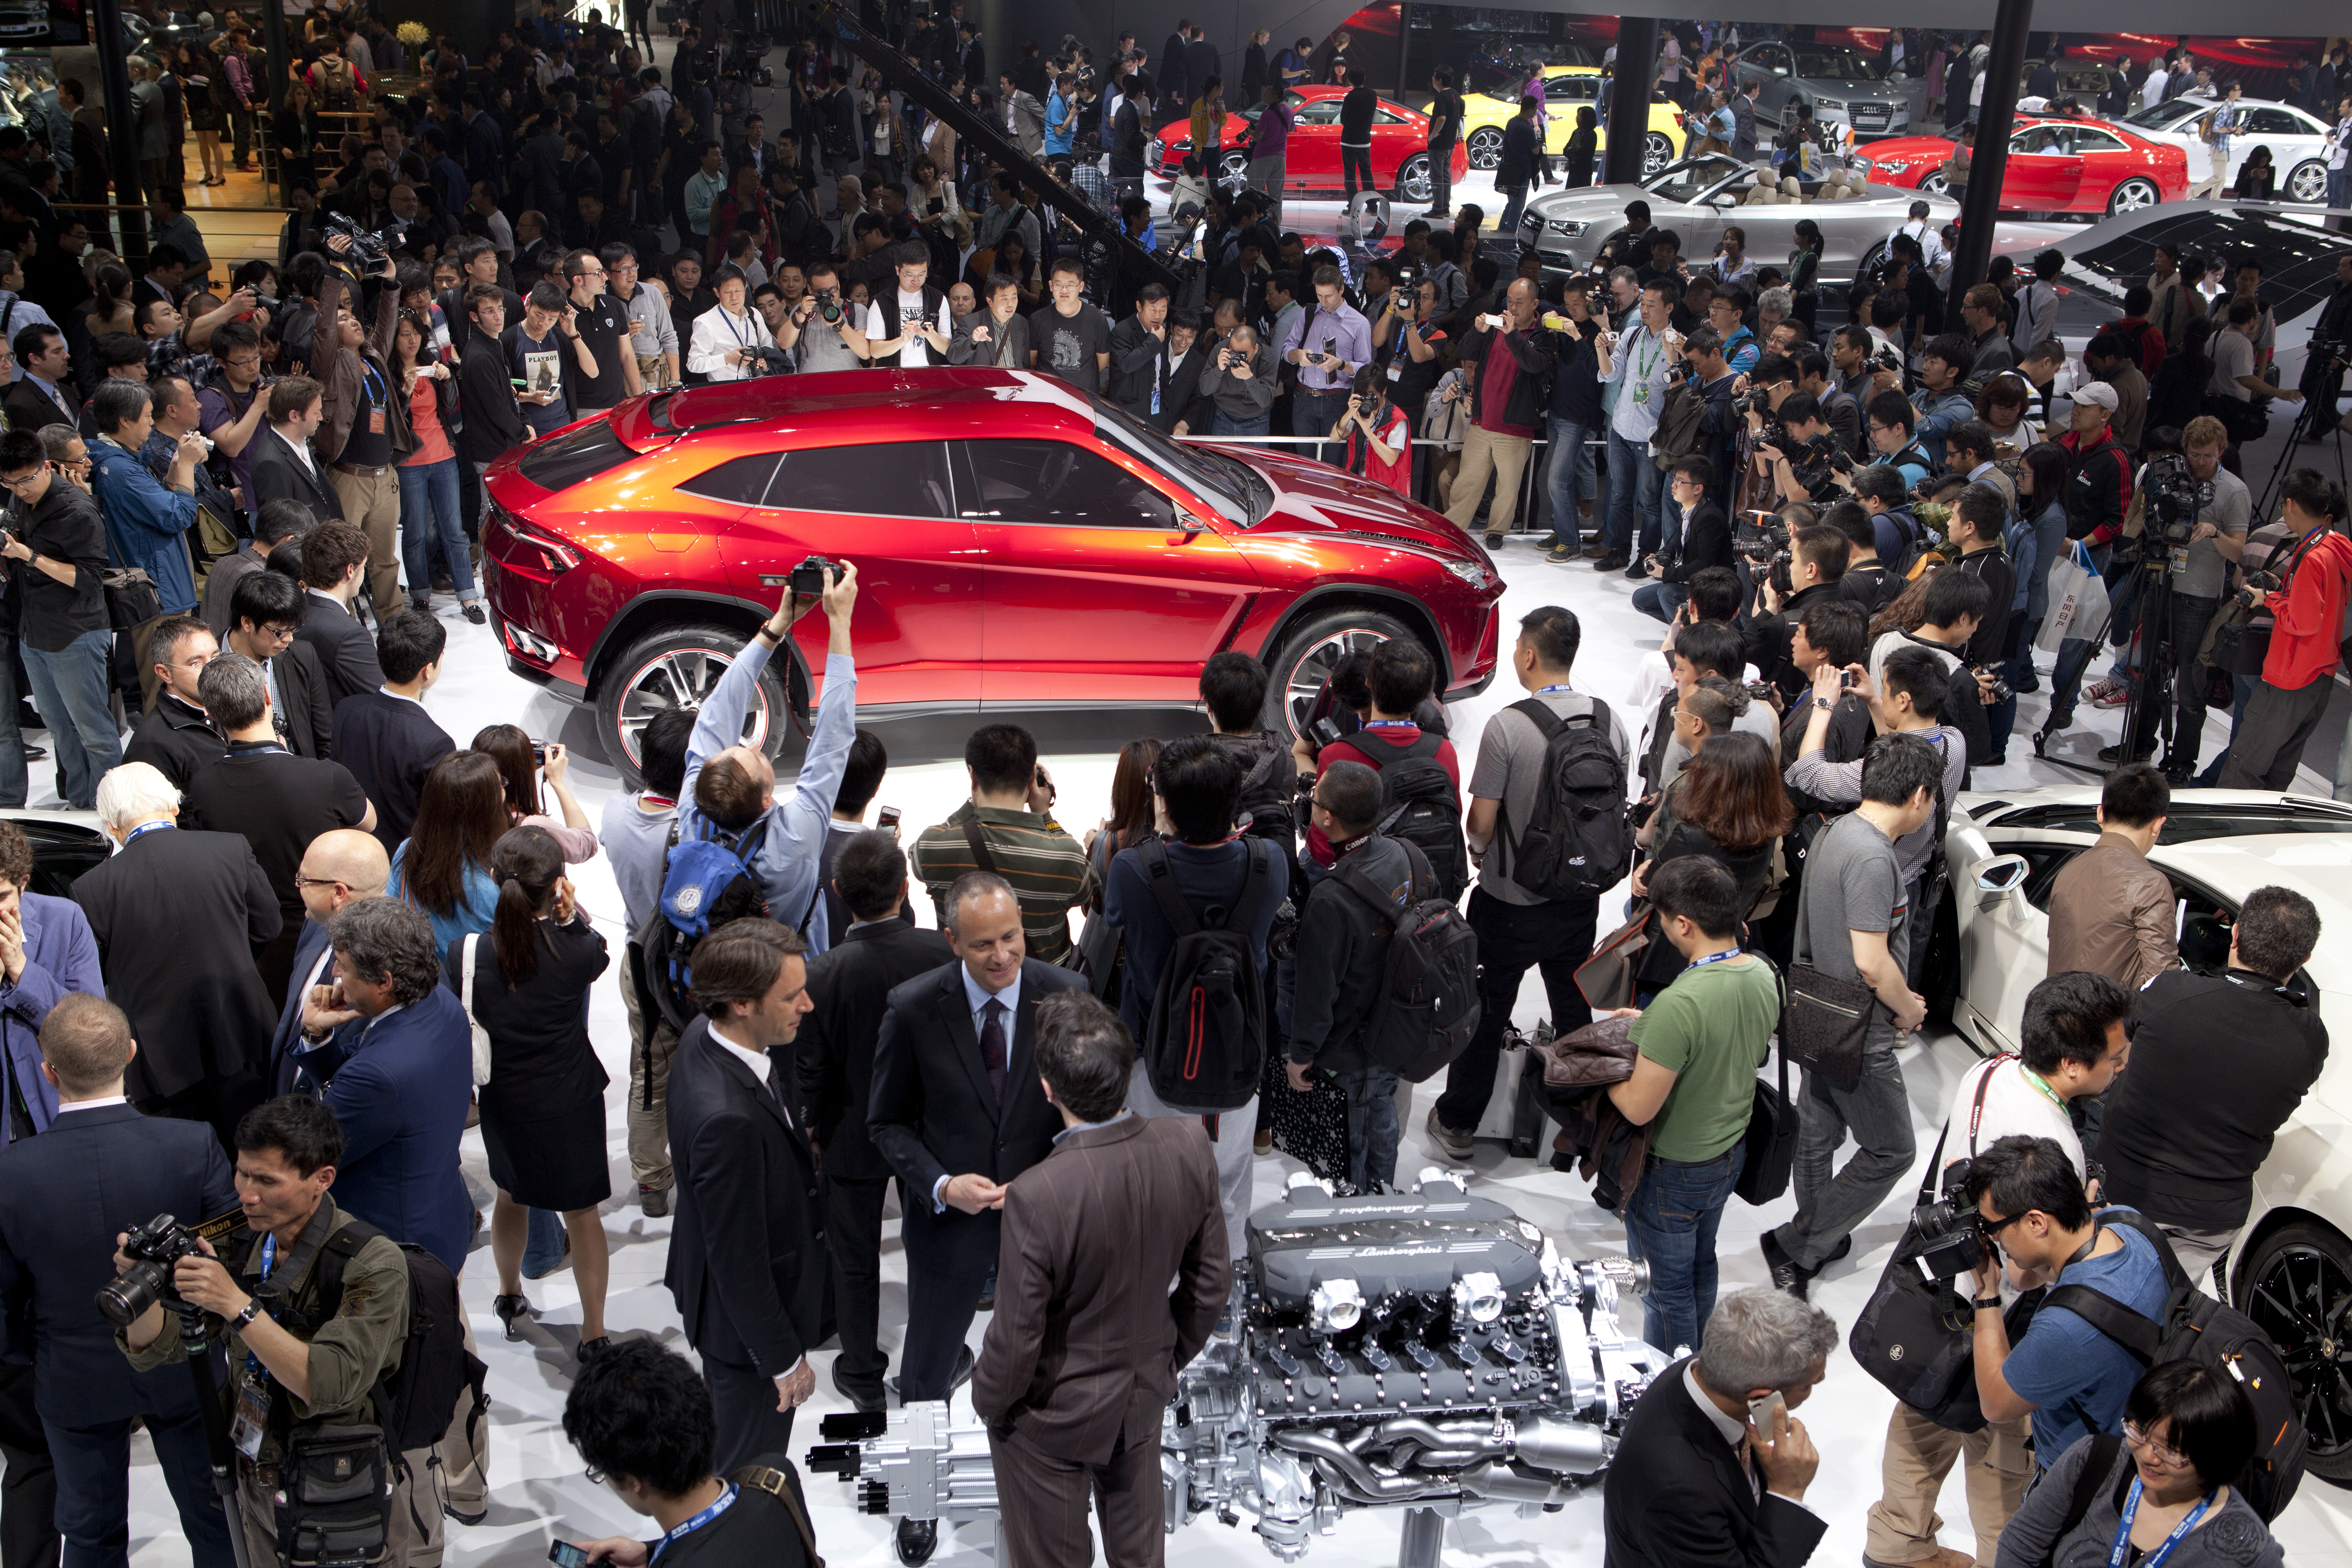 Lamborghini President and CEO, Stephan Winkelmann, launches the new Lamborghini Urus at the Beijing Auto Show in Beijing, China, April 23, 2012.